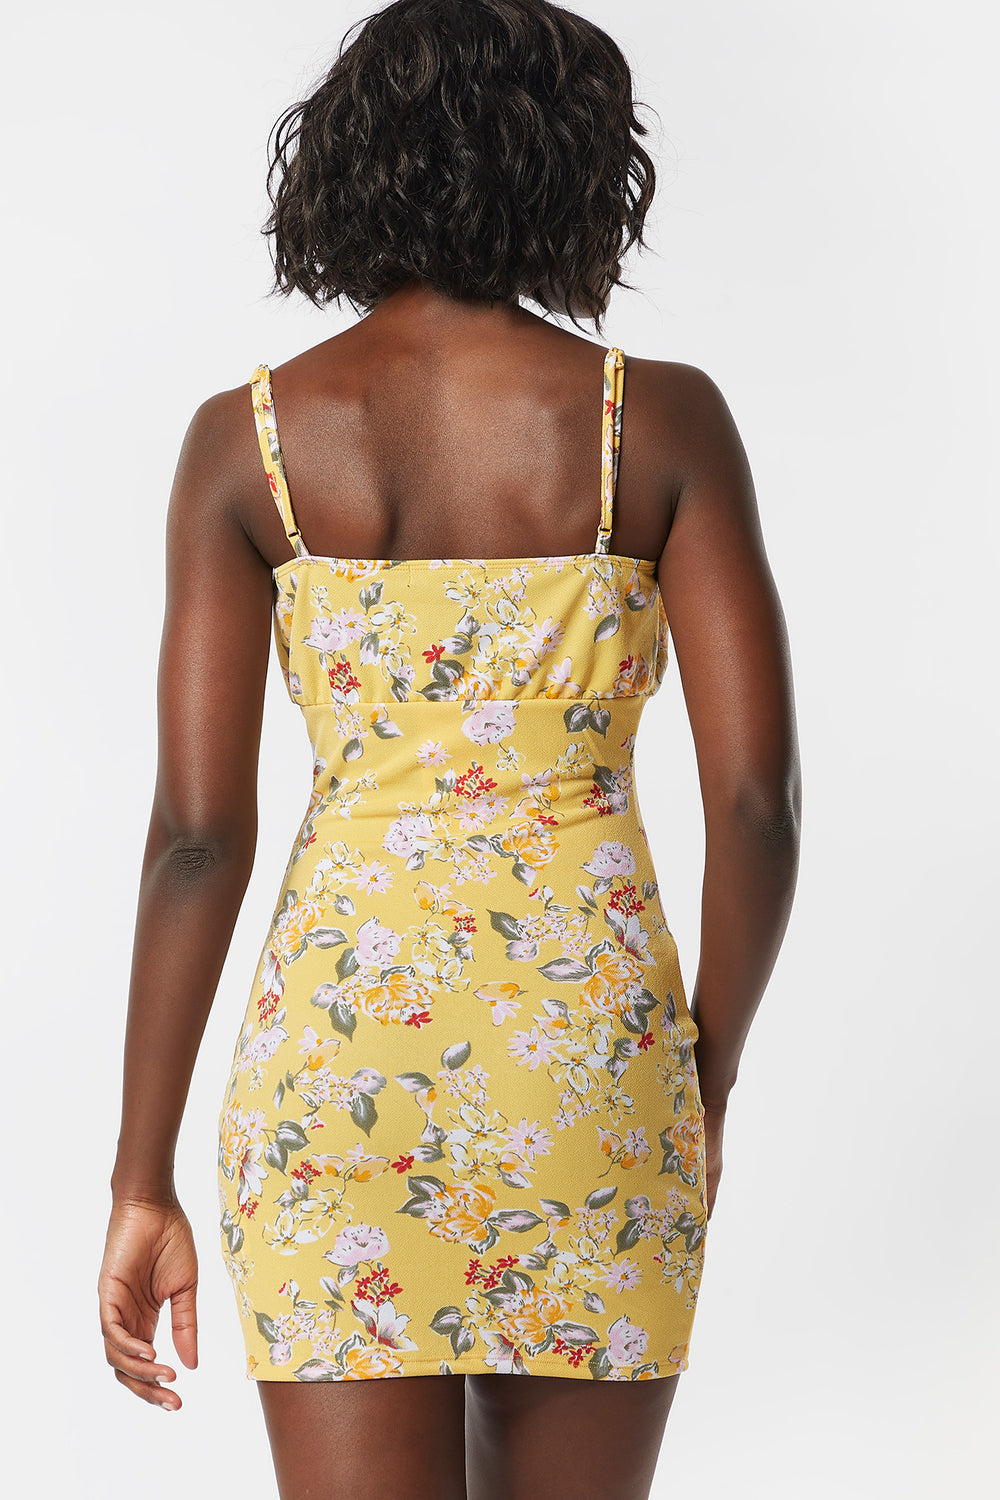 Printed Floral Milkmaid Self-Tie Front Cami Mini Dress Neon Yellow